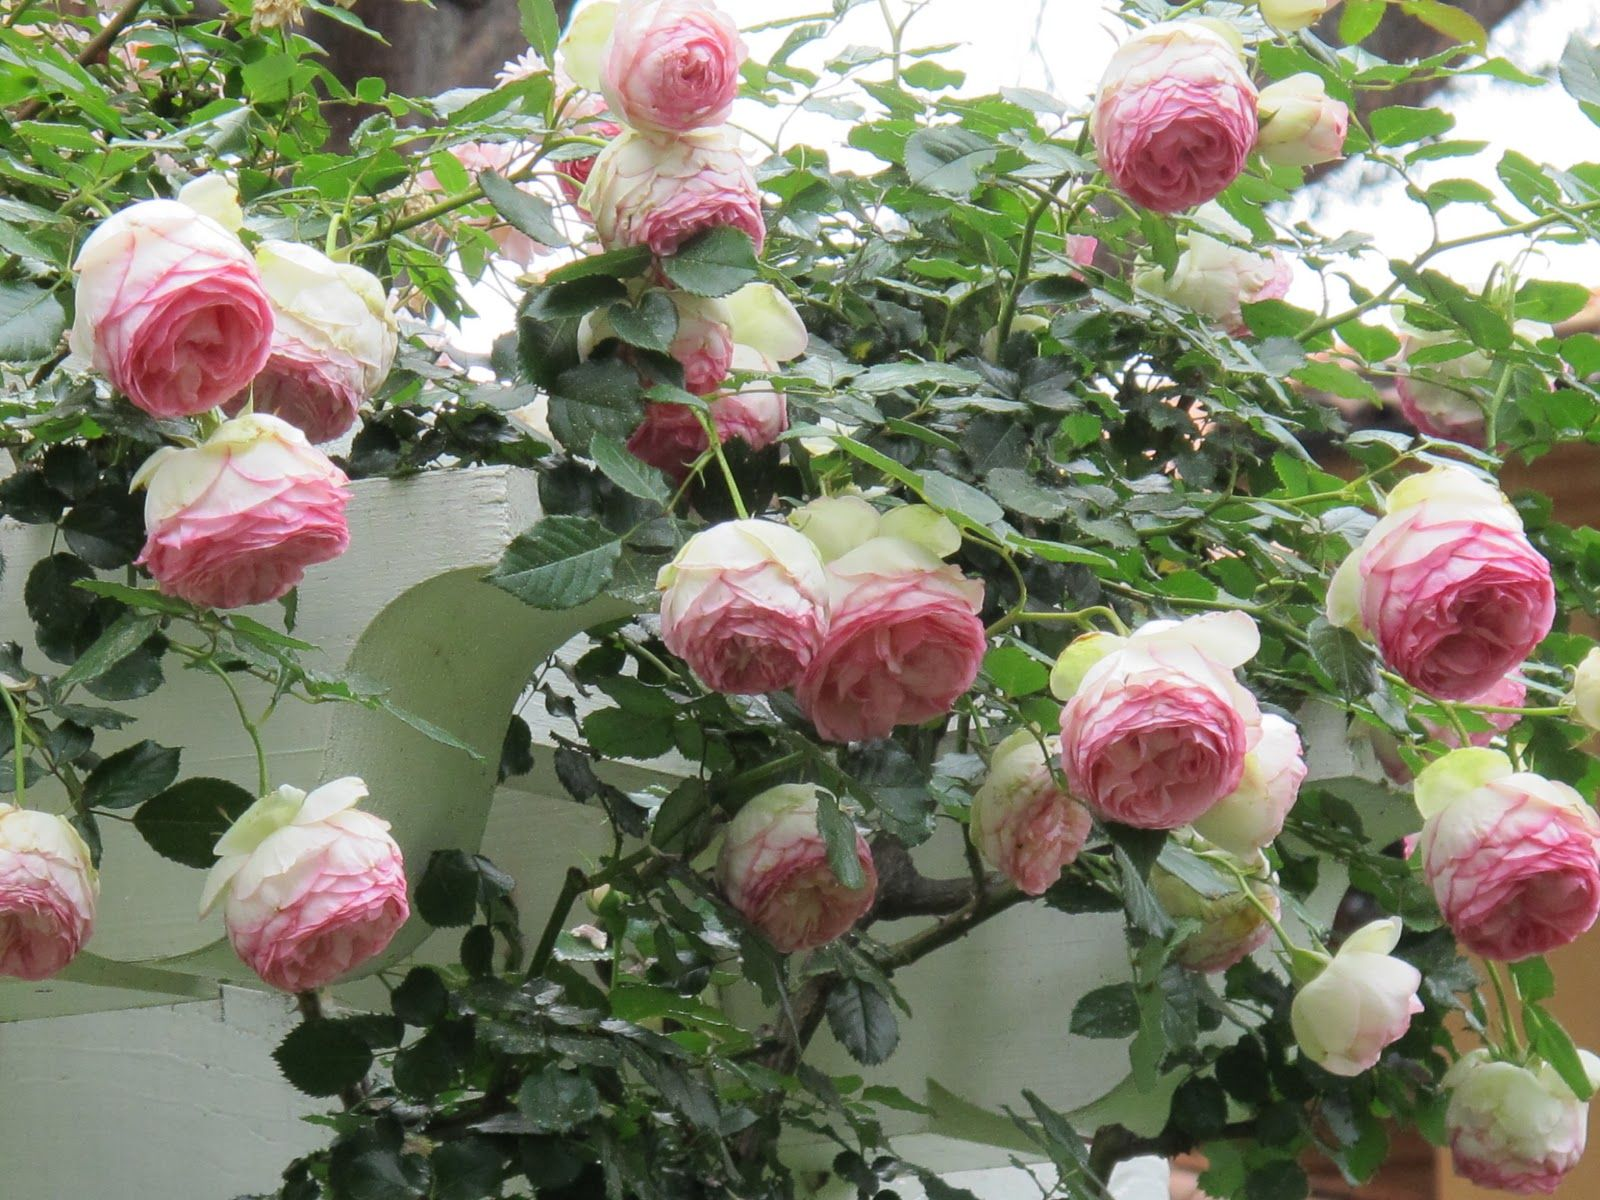 French climber rose Pierre de Ronsard rose, or Eden as it